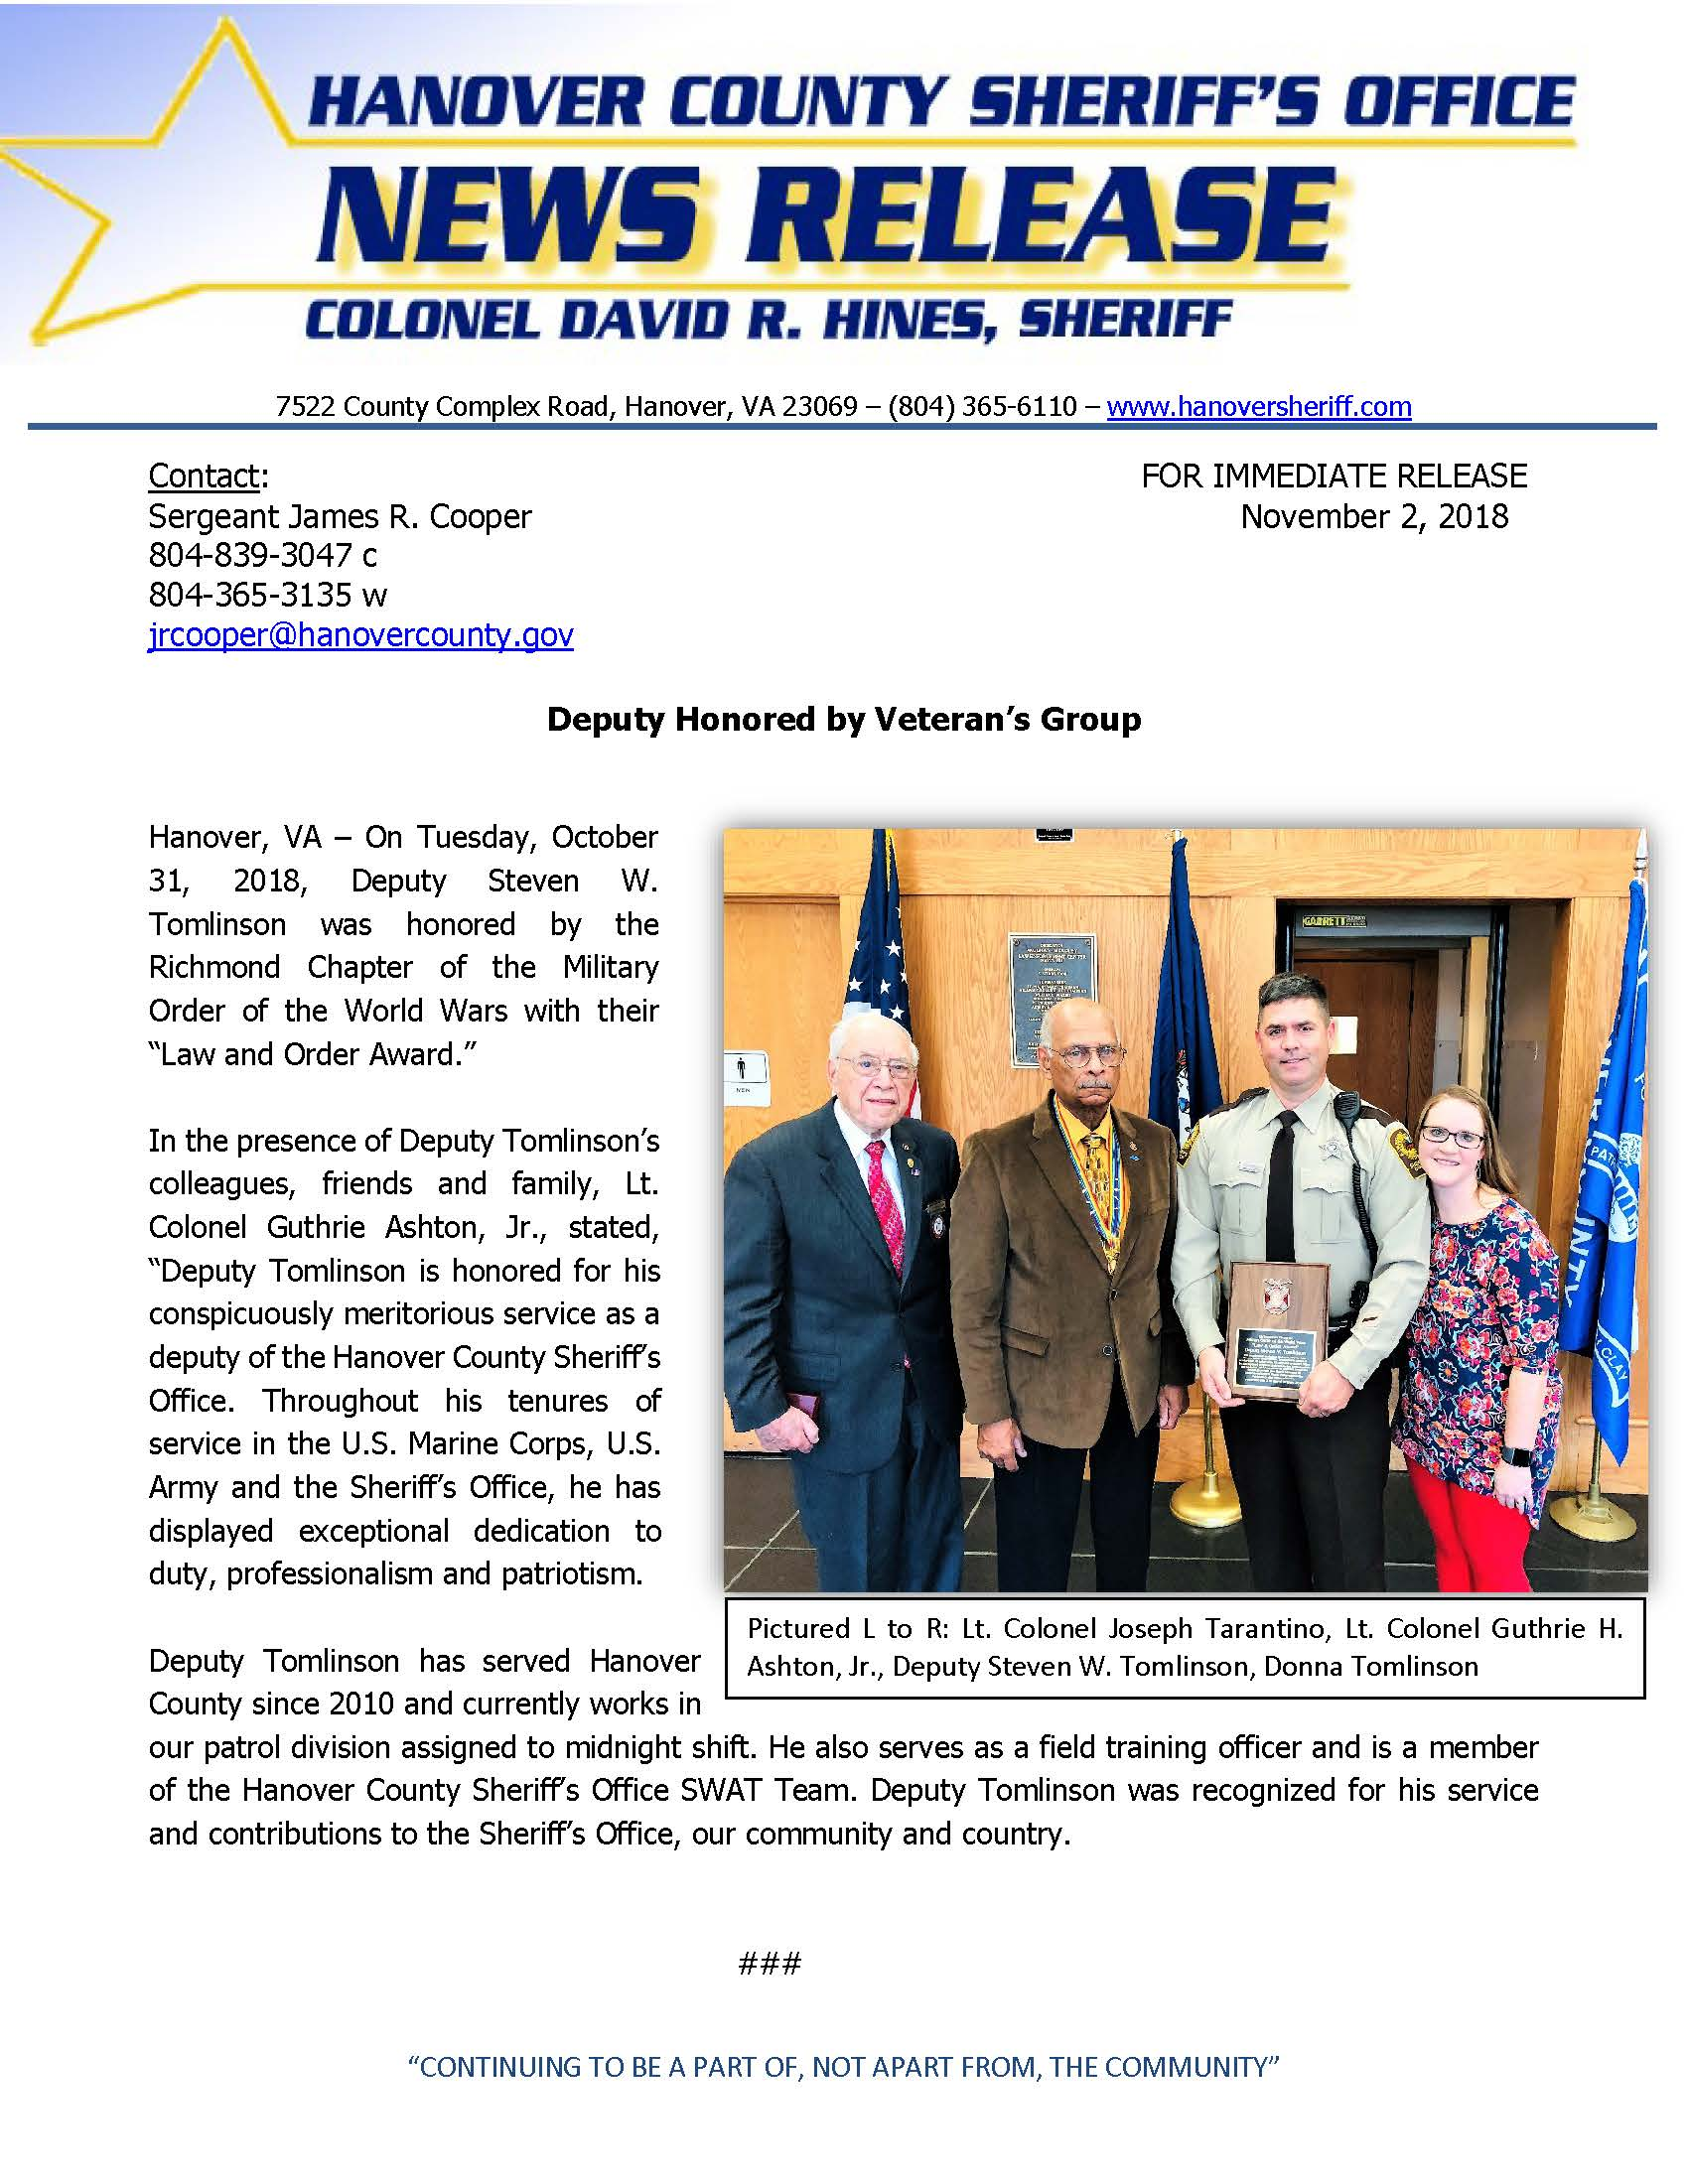 HCSO - Deputy Honored by Veterans Group- November 1 2018